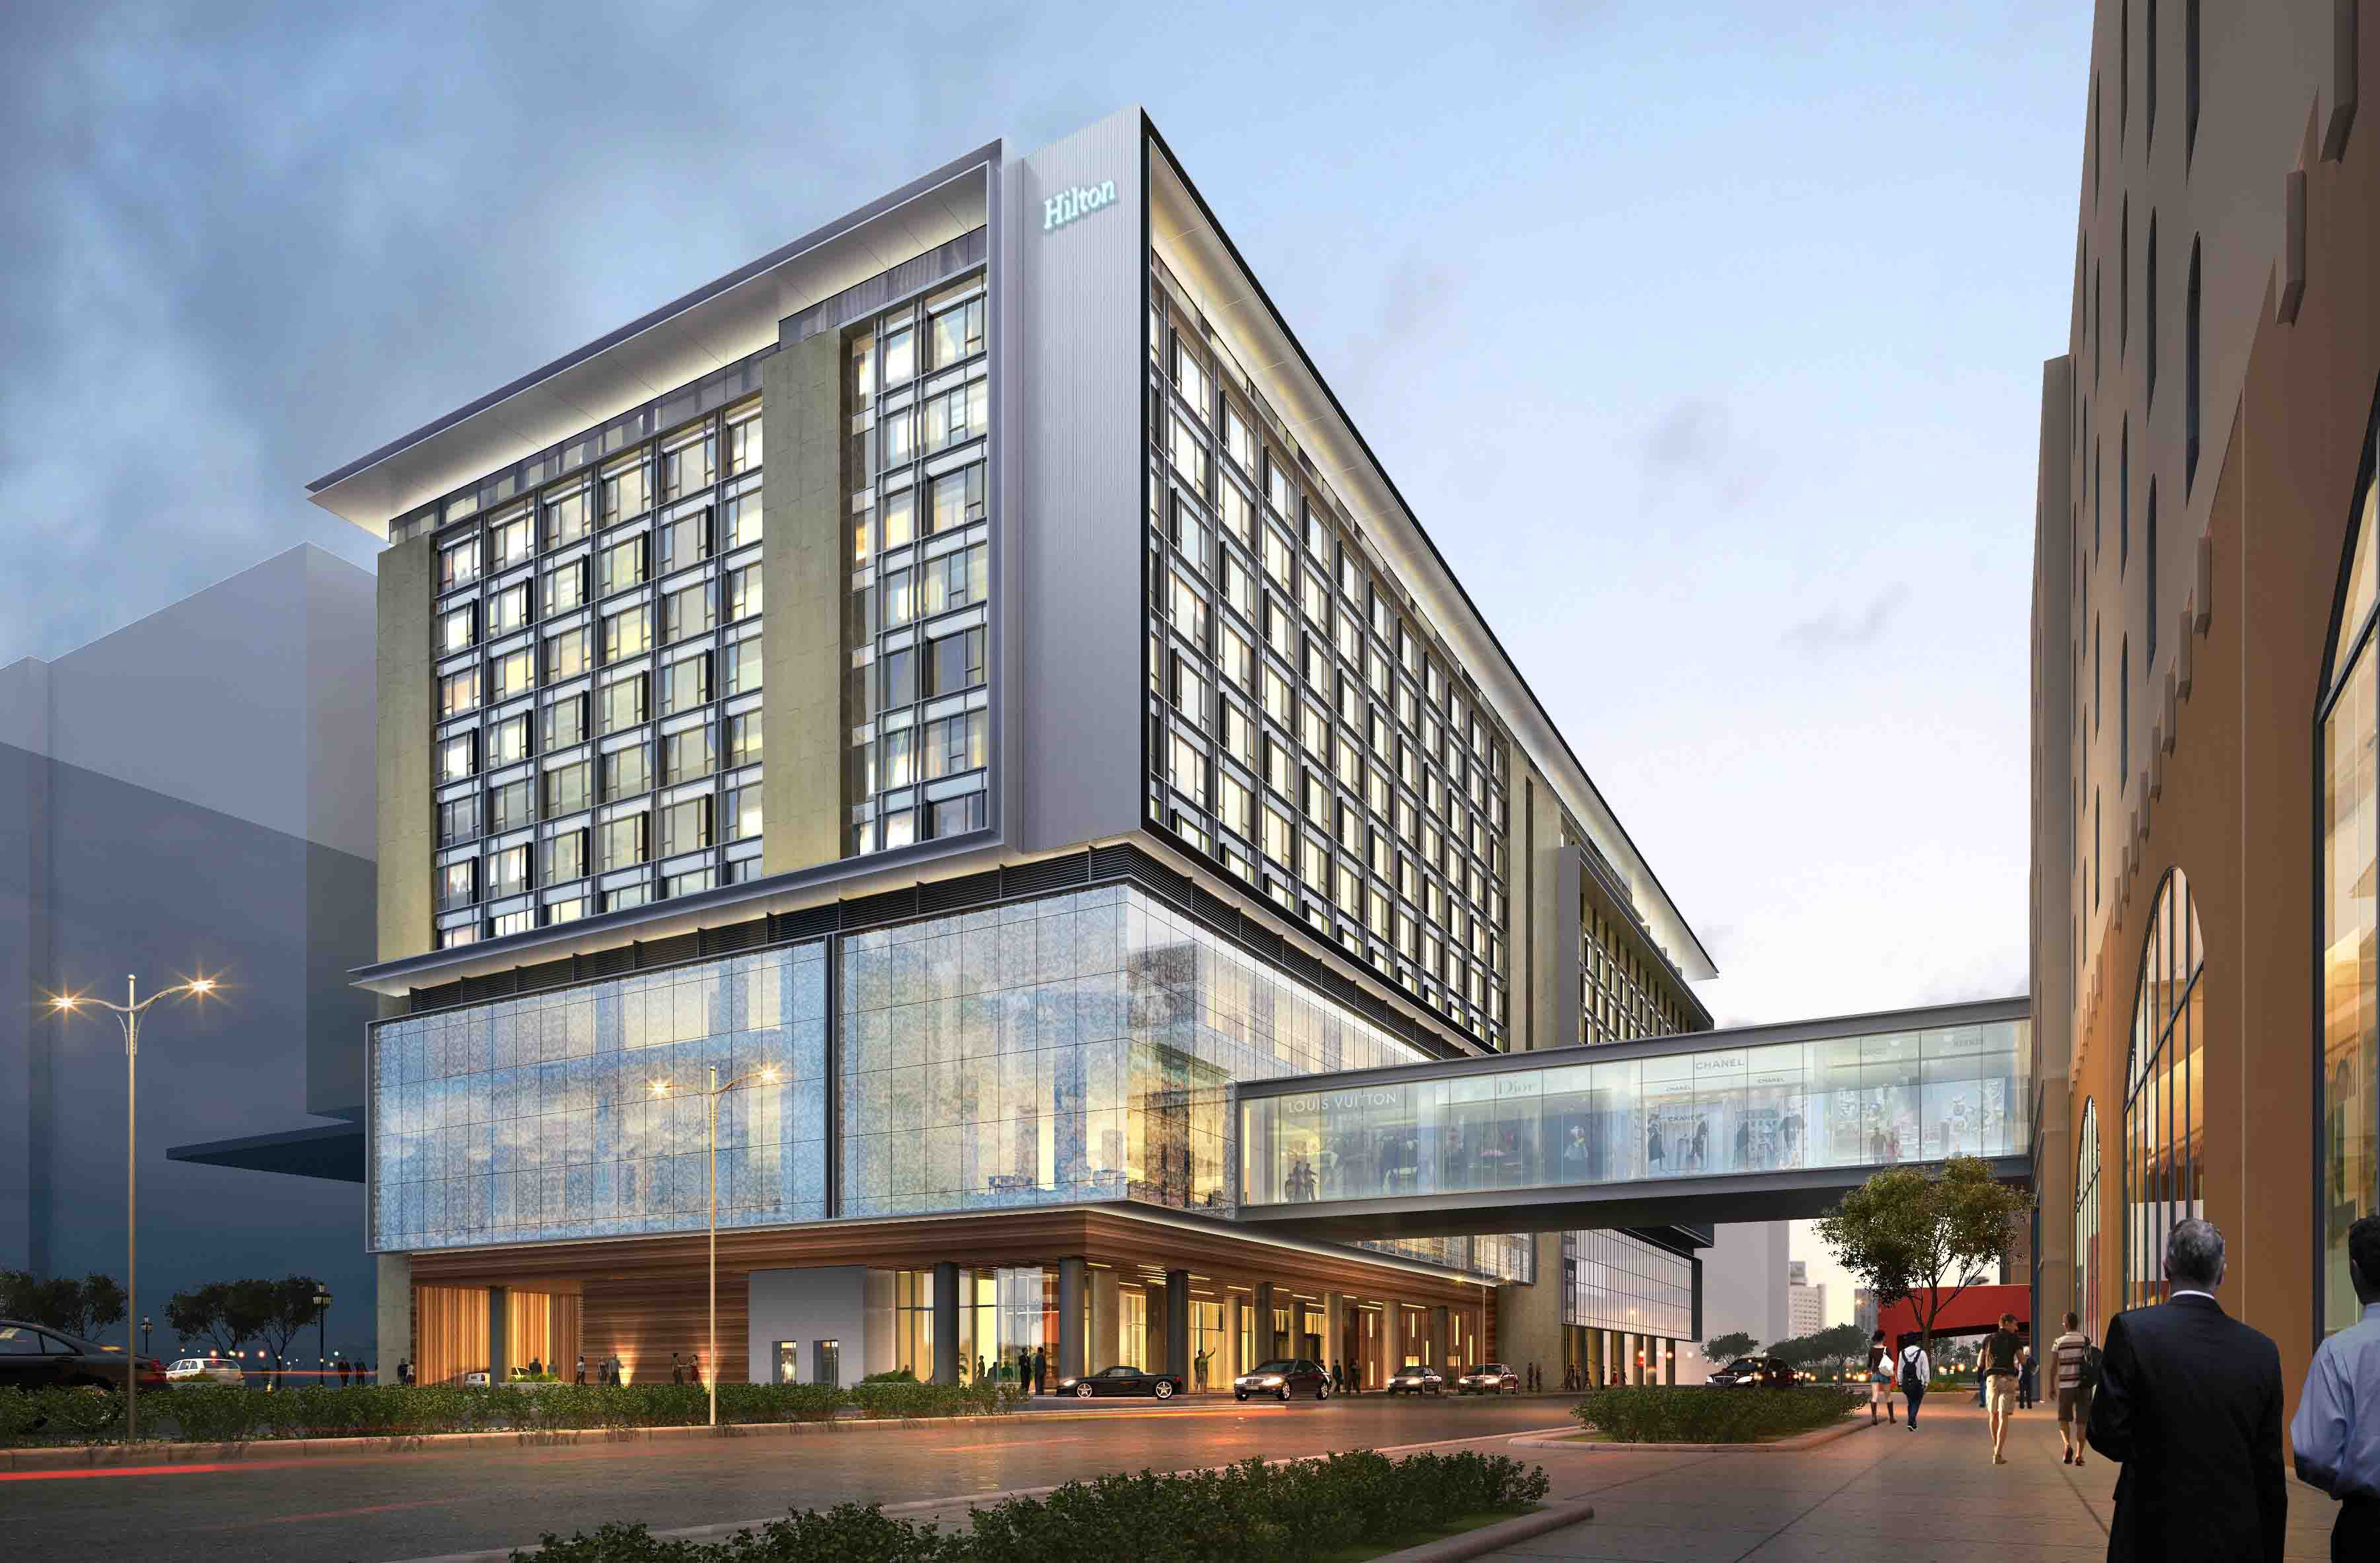 Launch of Hilton Manila reaffirms brand's presence in the Philippines